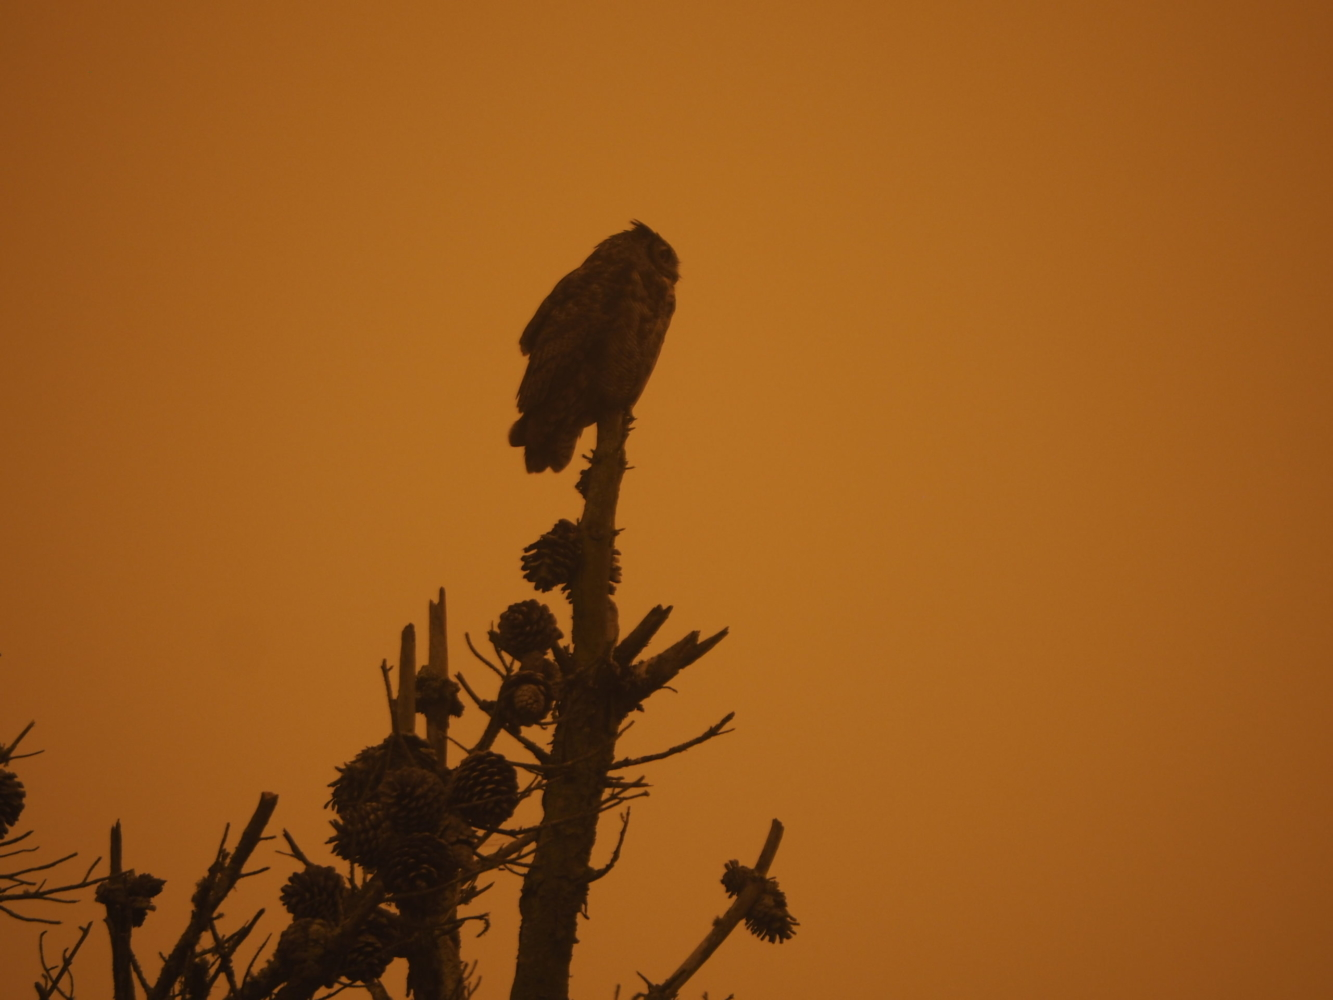 The silhouette of an owl atop a pine tree in a dusky orange glow.